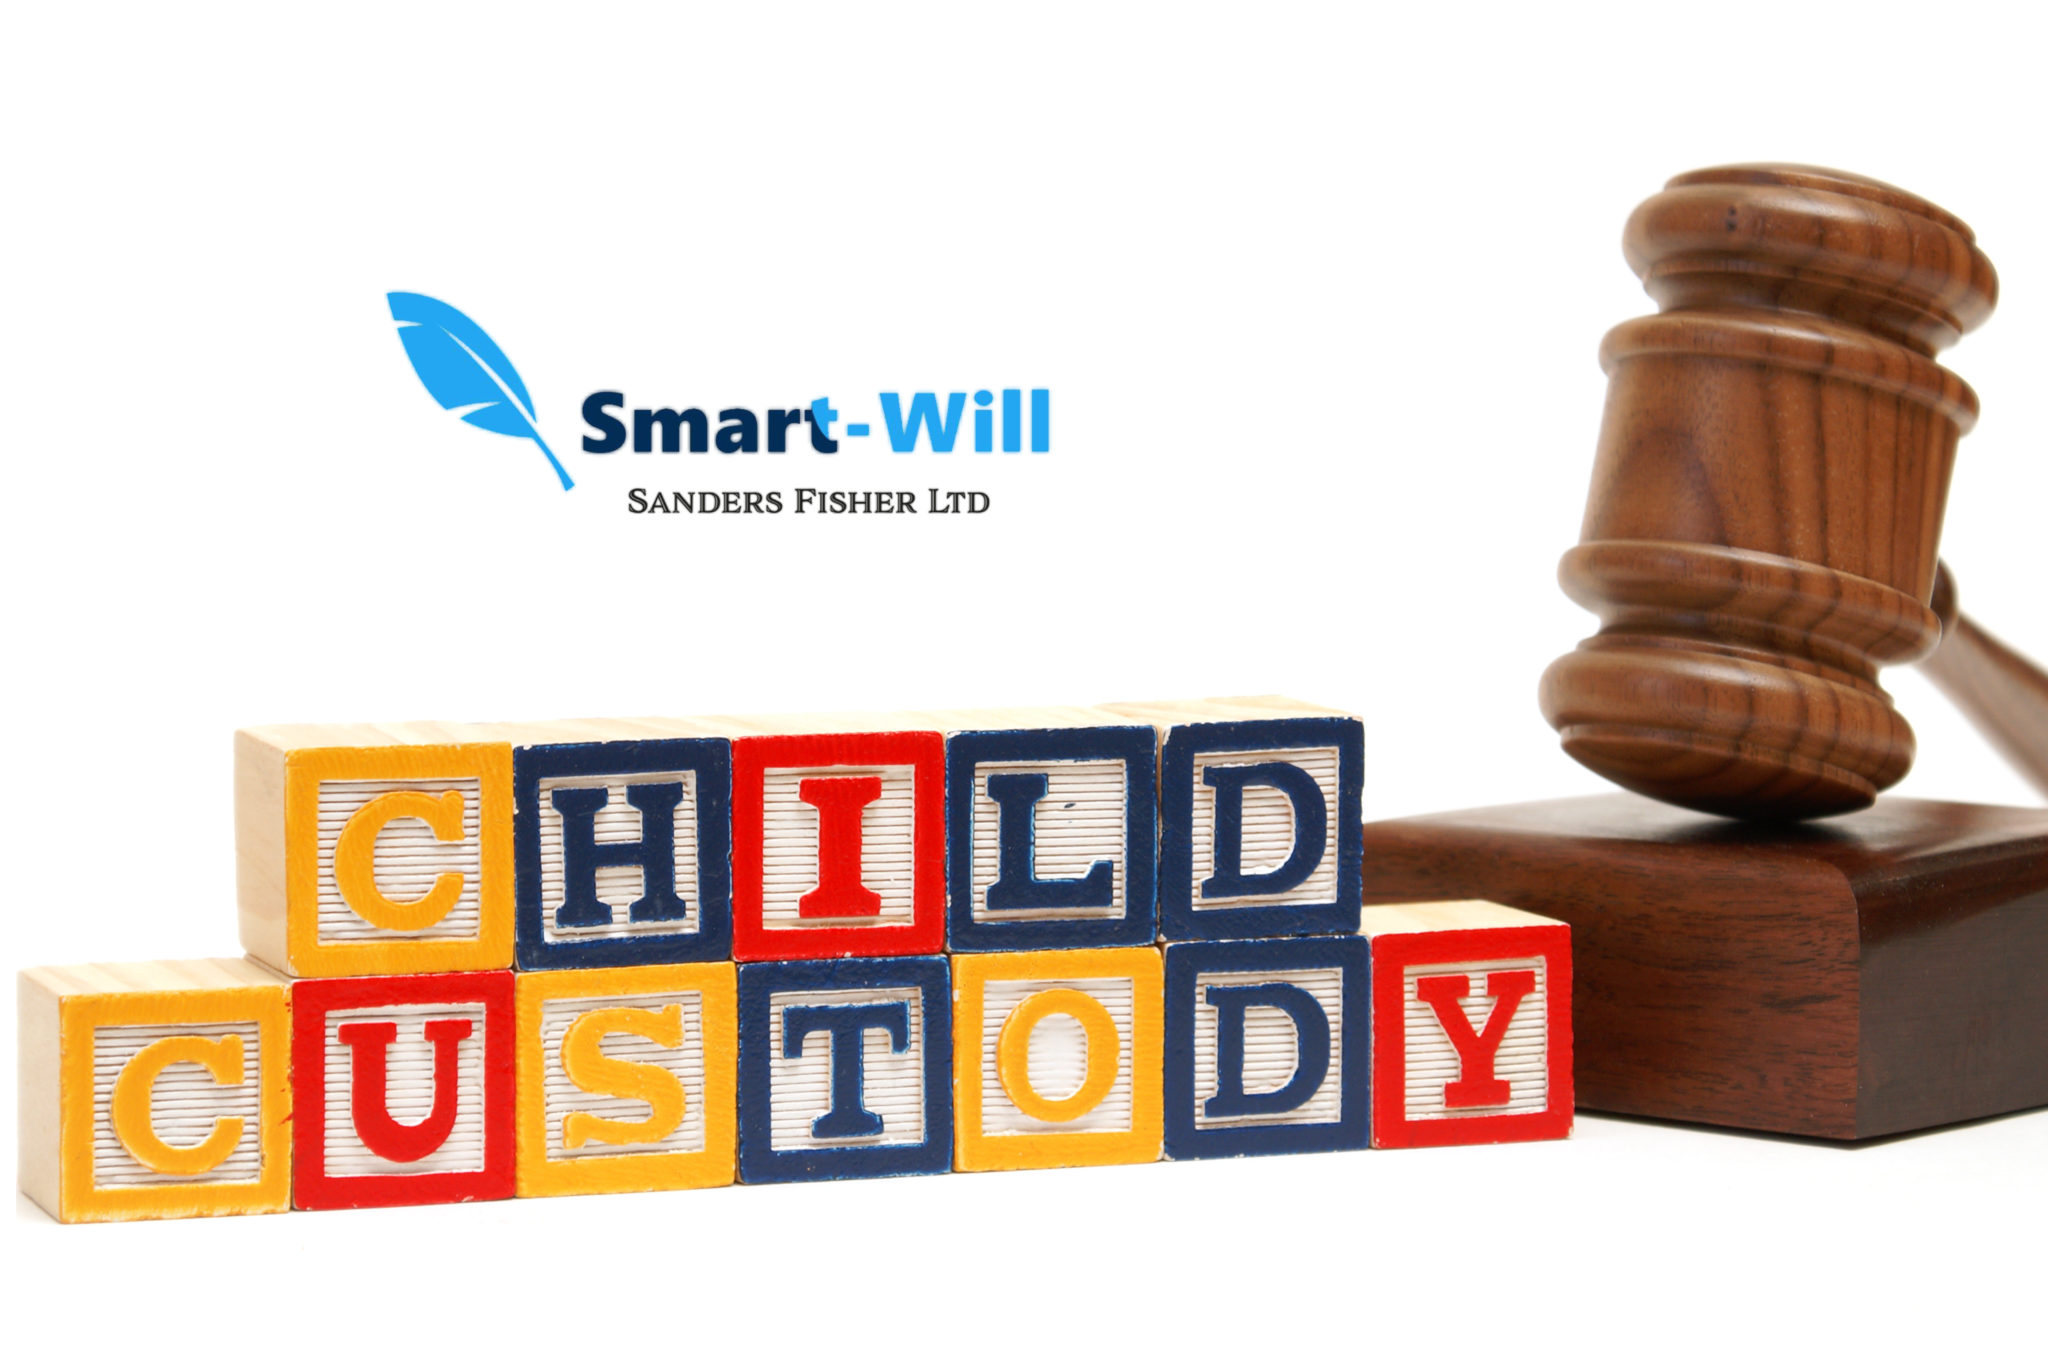 Should you choose a legal guardian for your children?